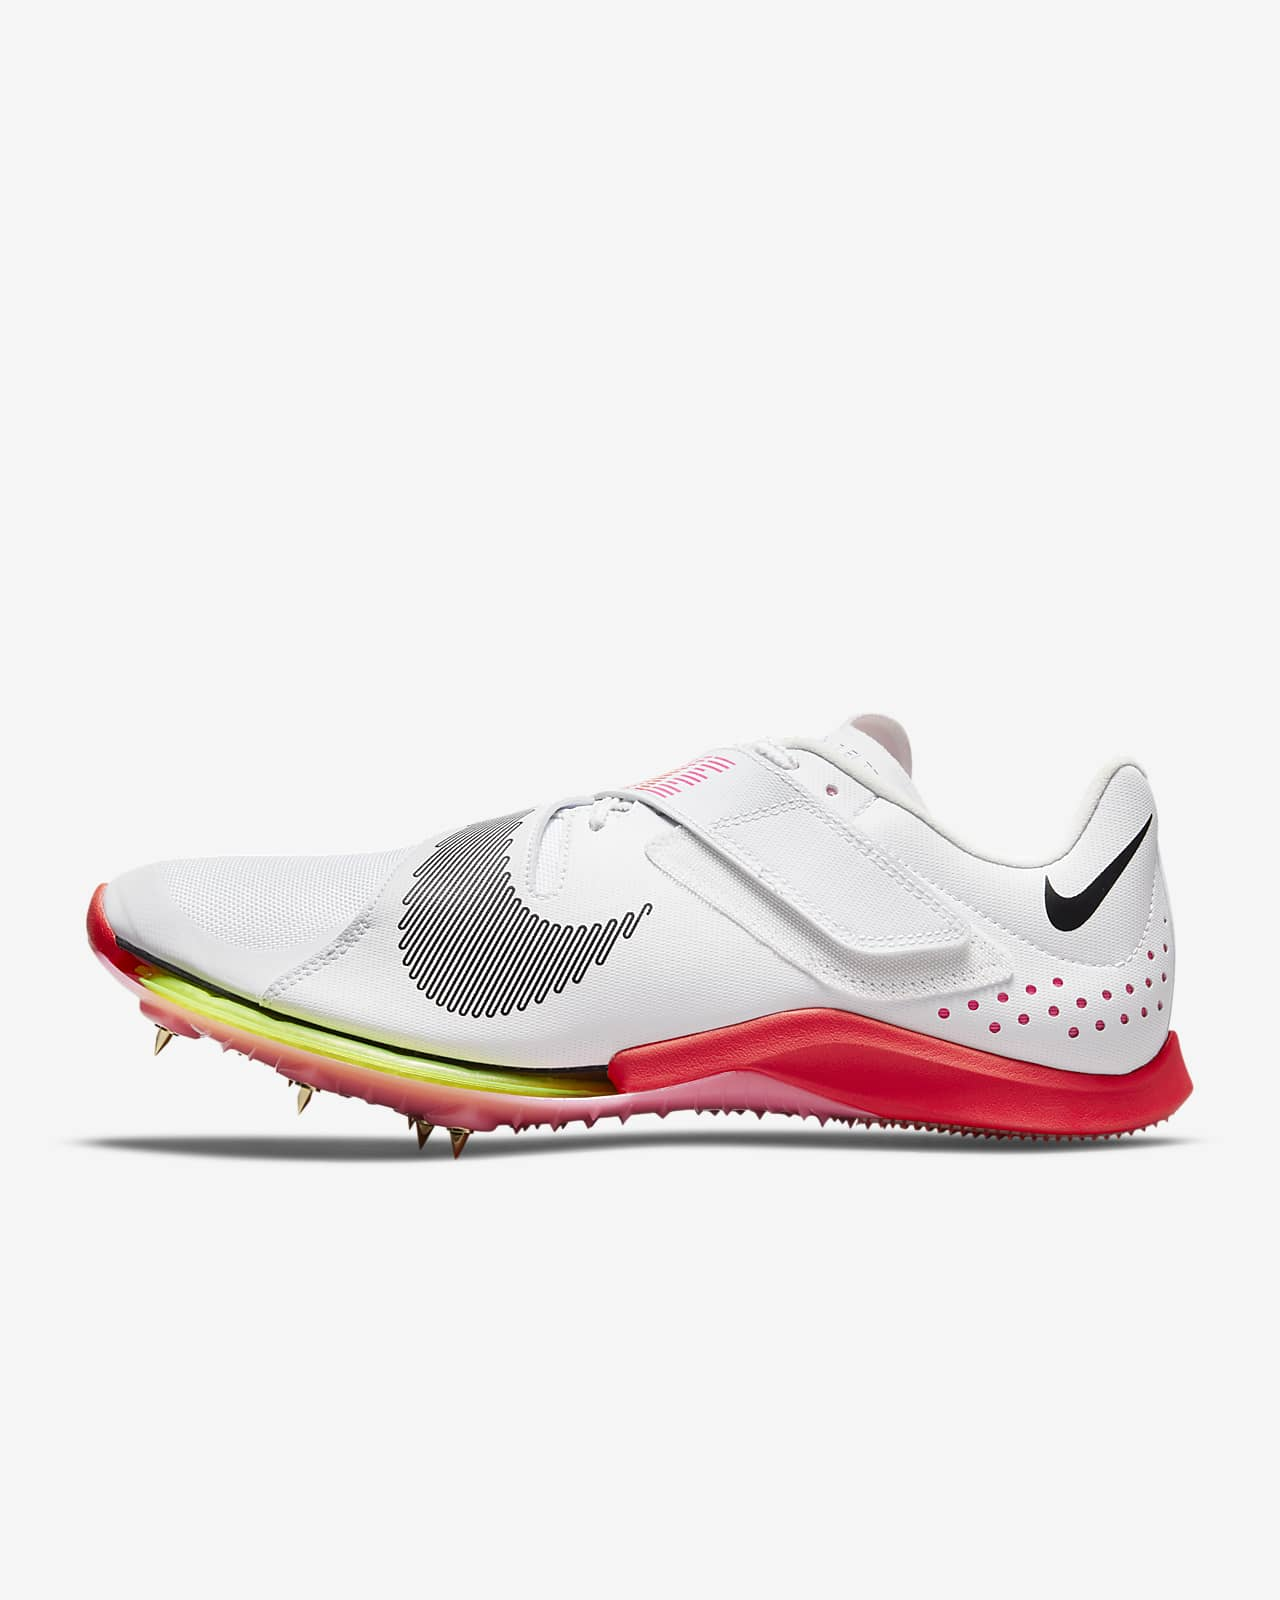 Nike Air Zoom Long Jump Elite Track and field jumping spikes